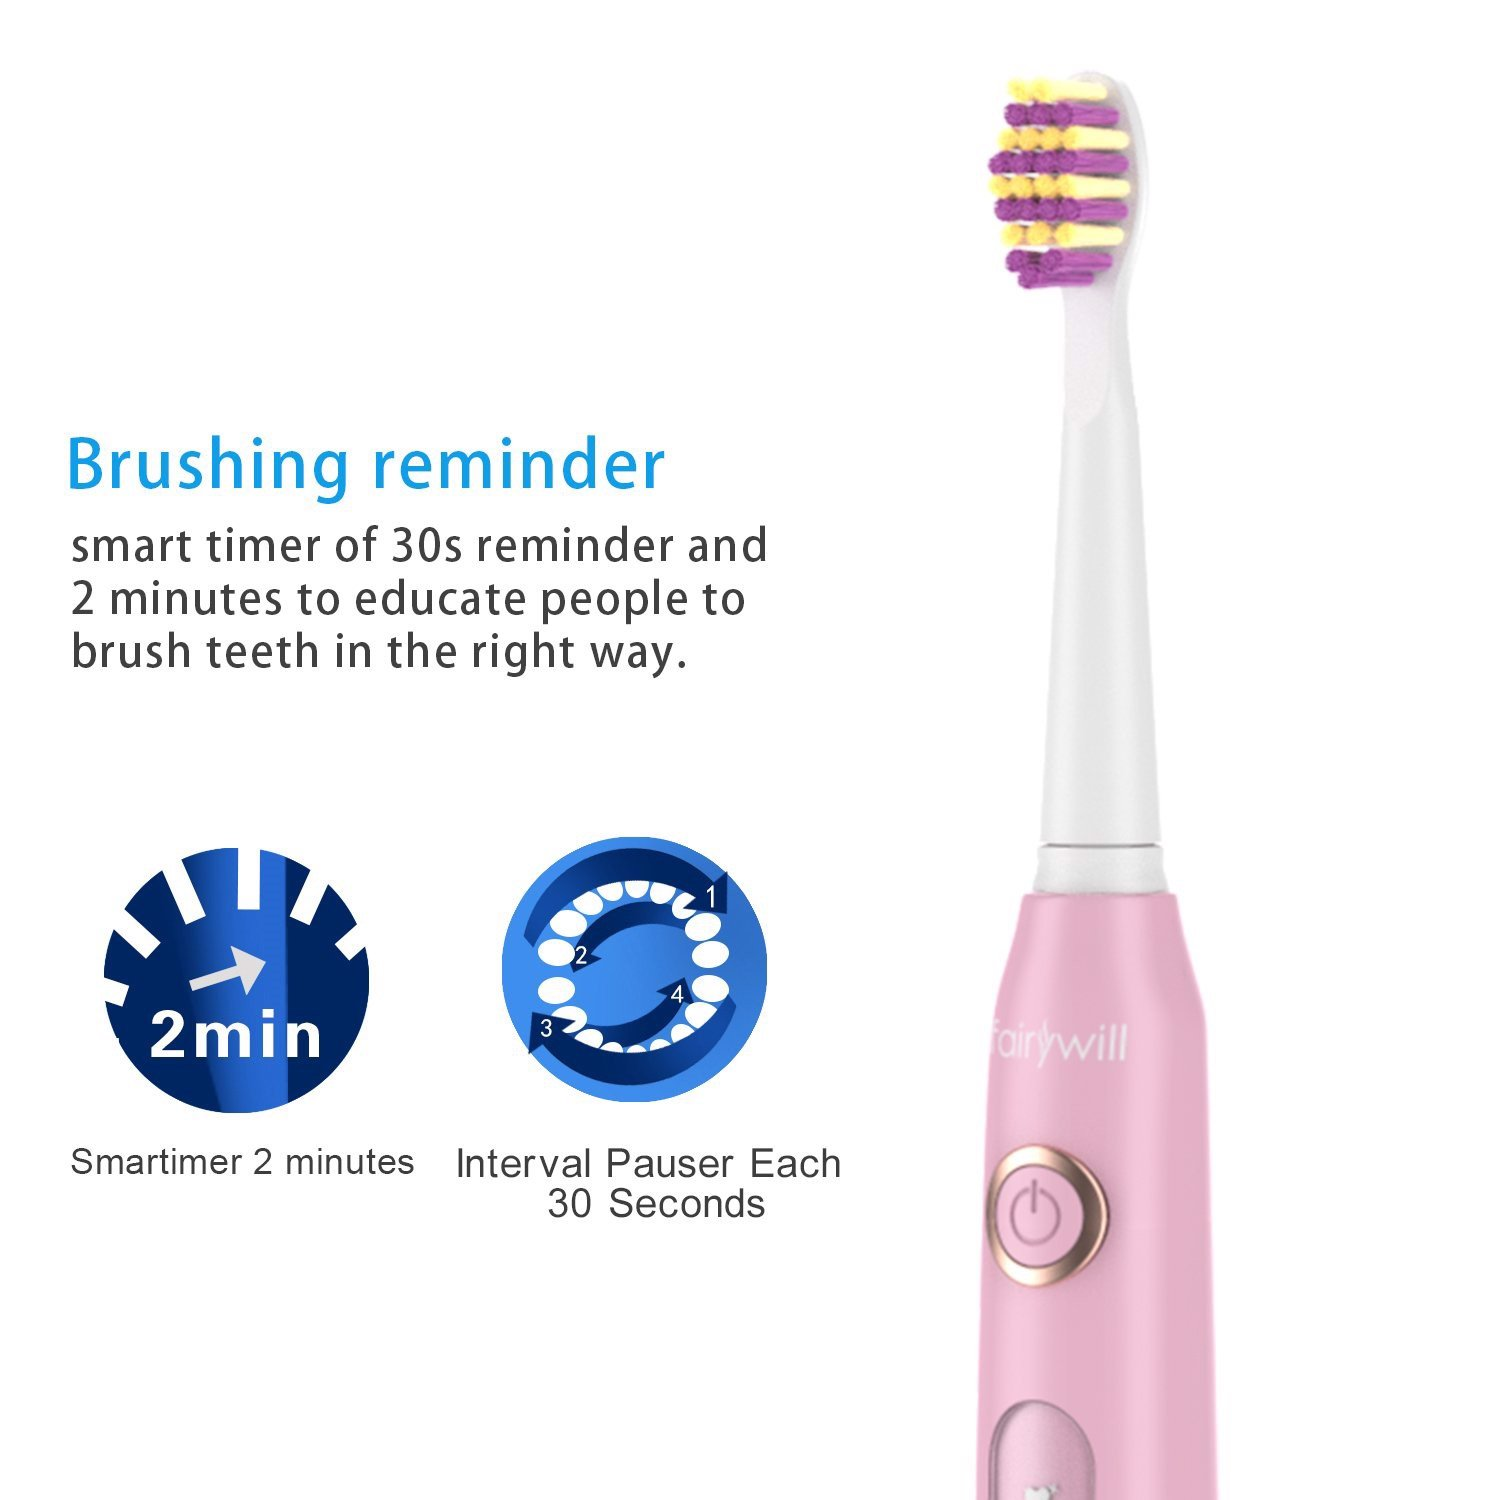 Máy đánh răng Fairywill UltraSonic Powered Electric Toothbrush ADA Accepted with 5 Modes